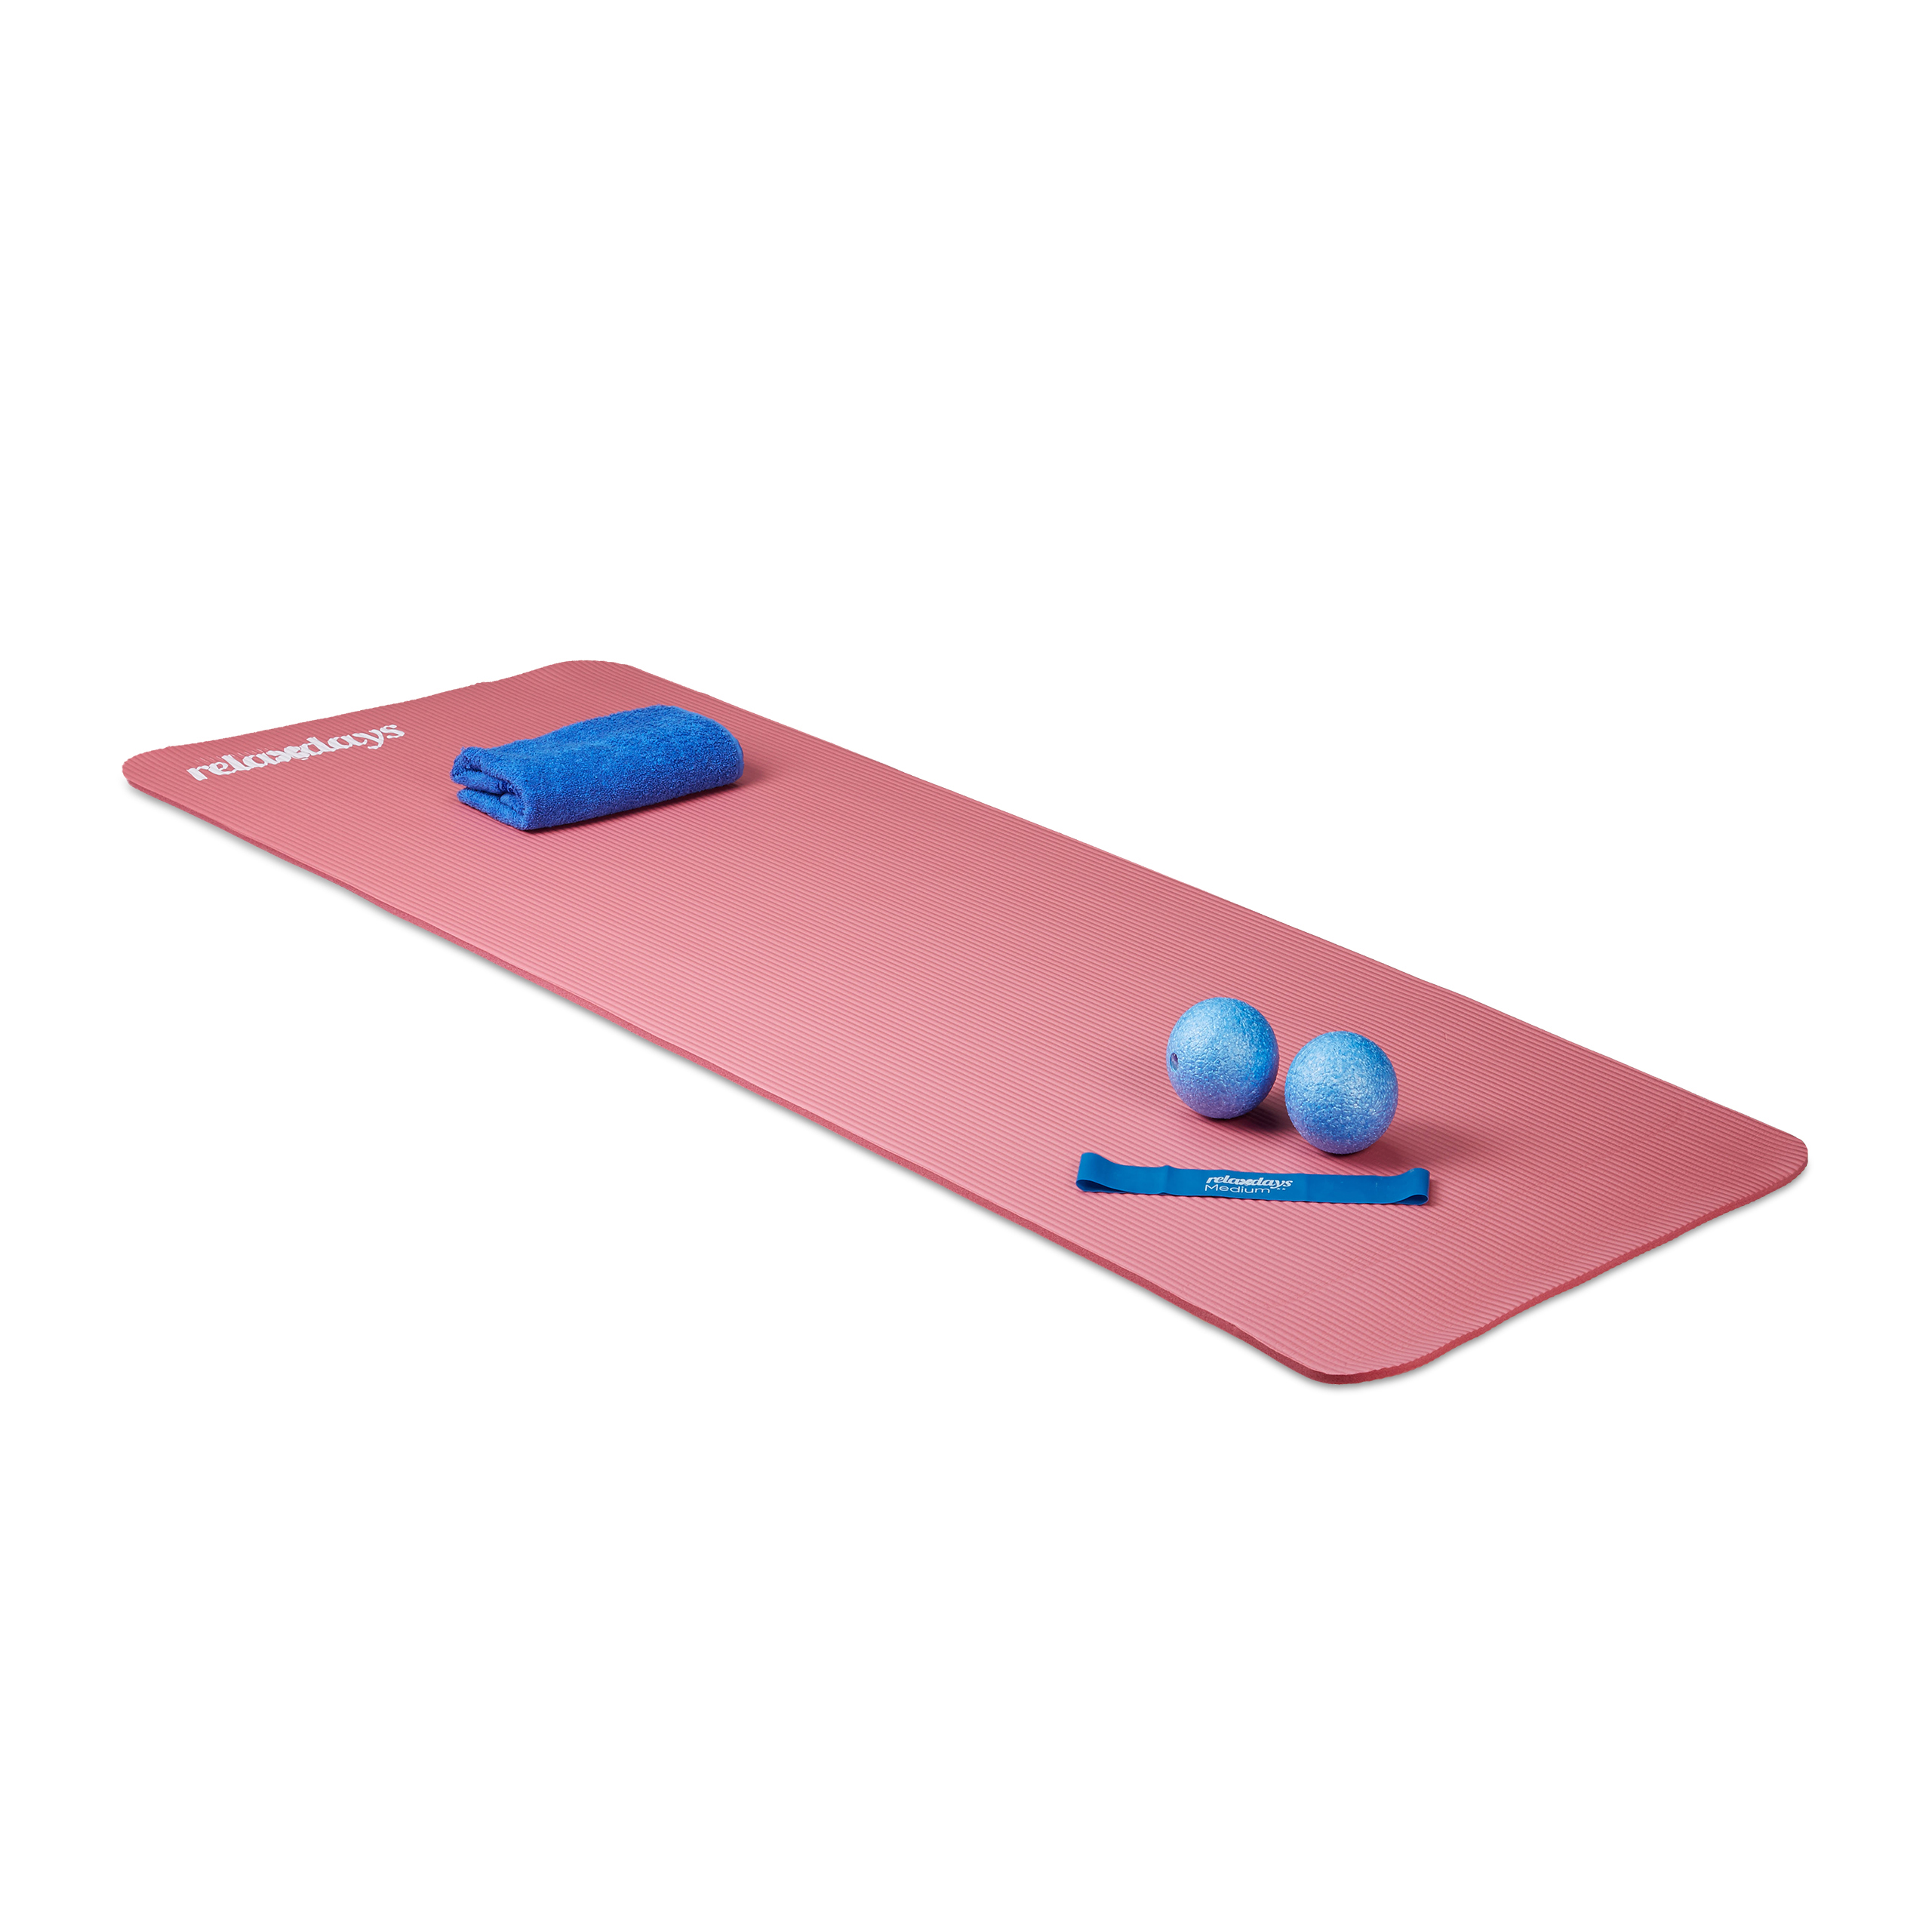 Yoga-Mat-1-cm-Thick-Soft-Rubber-Various-Colours-with-Holding-Straps